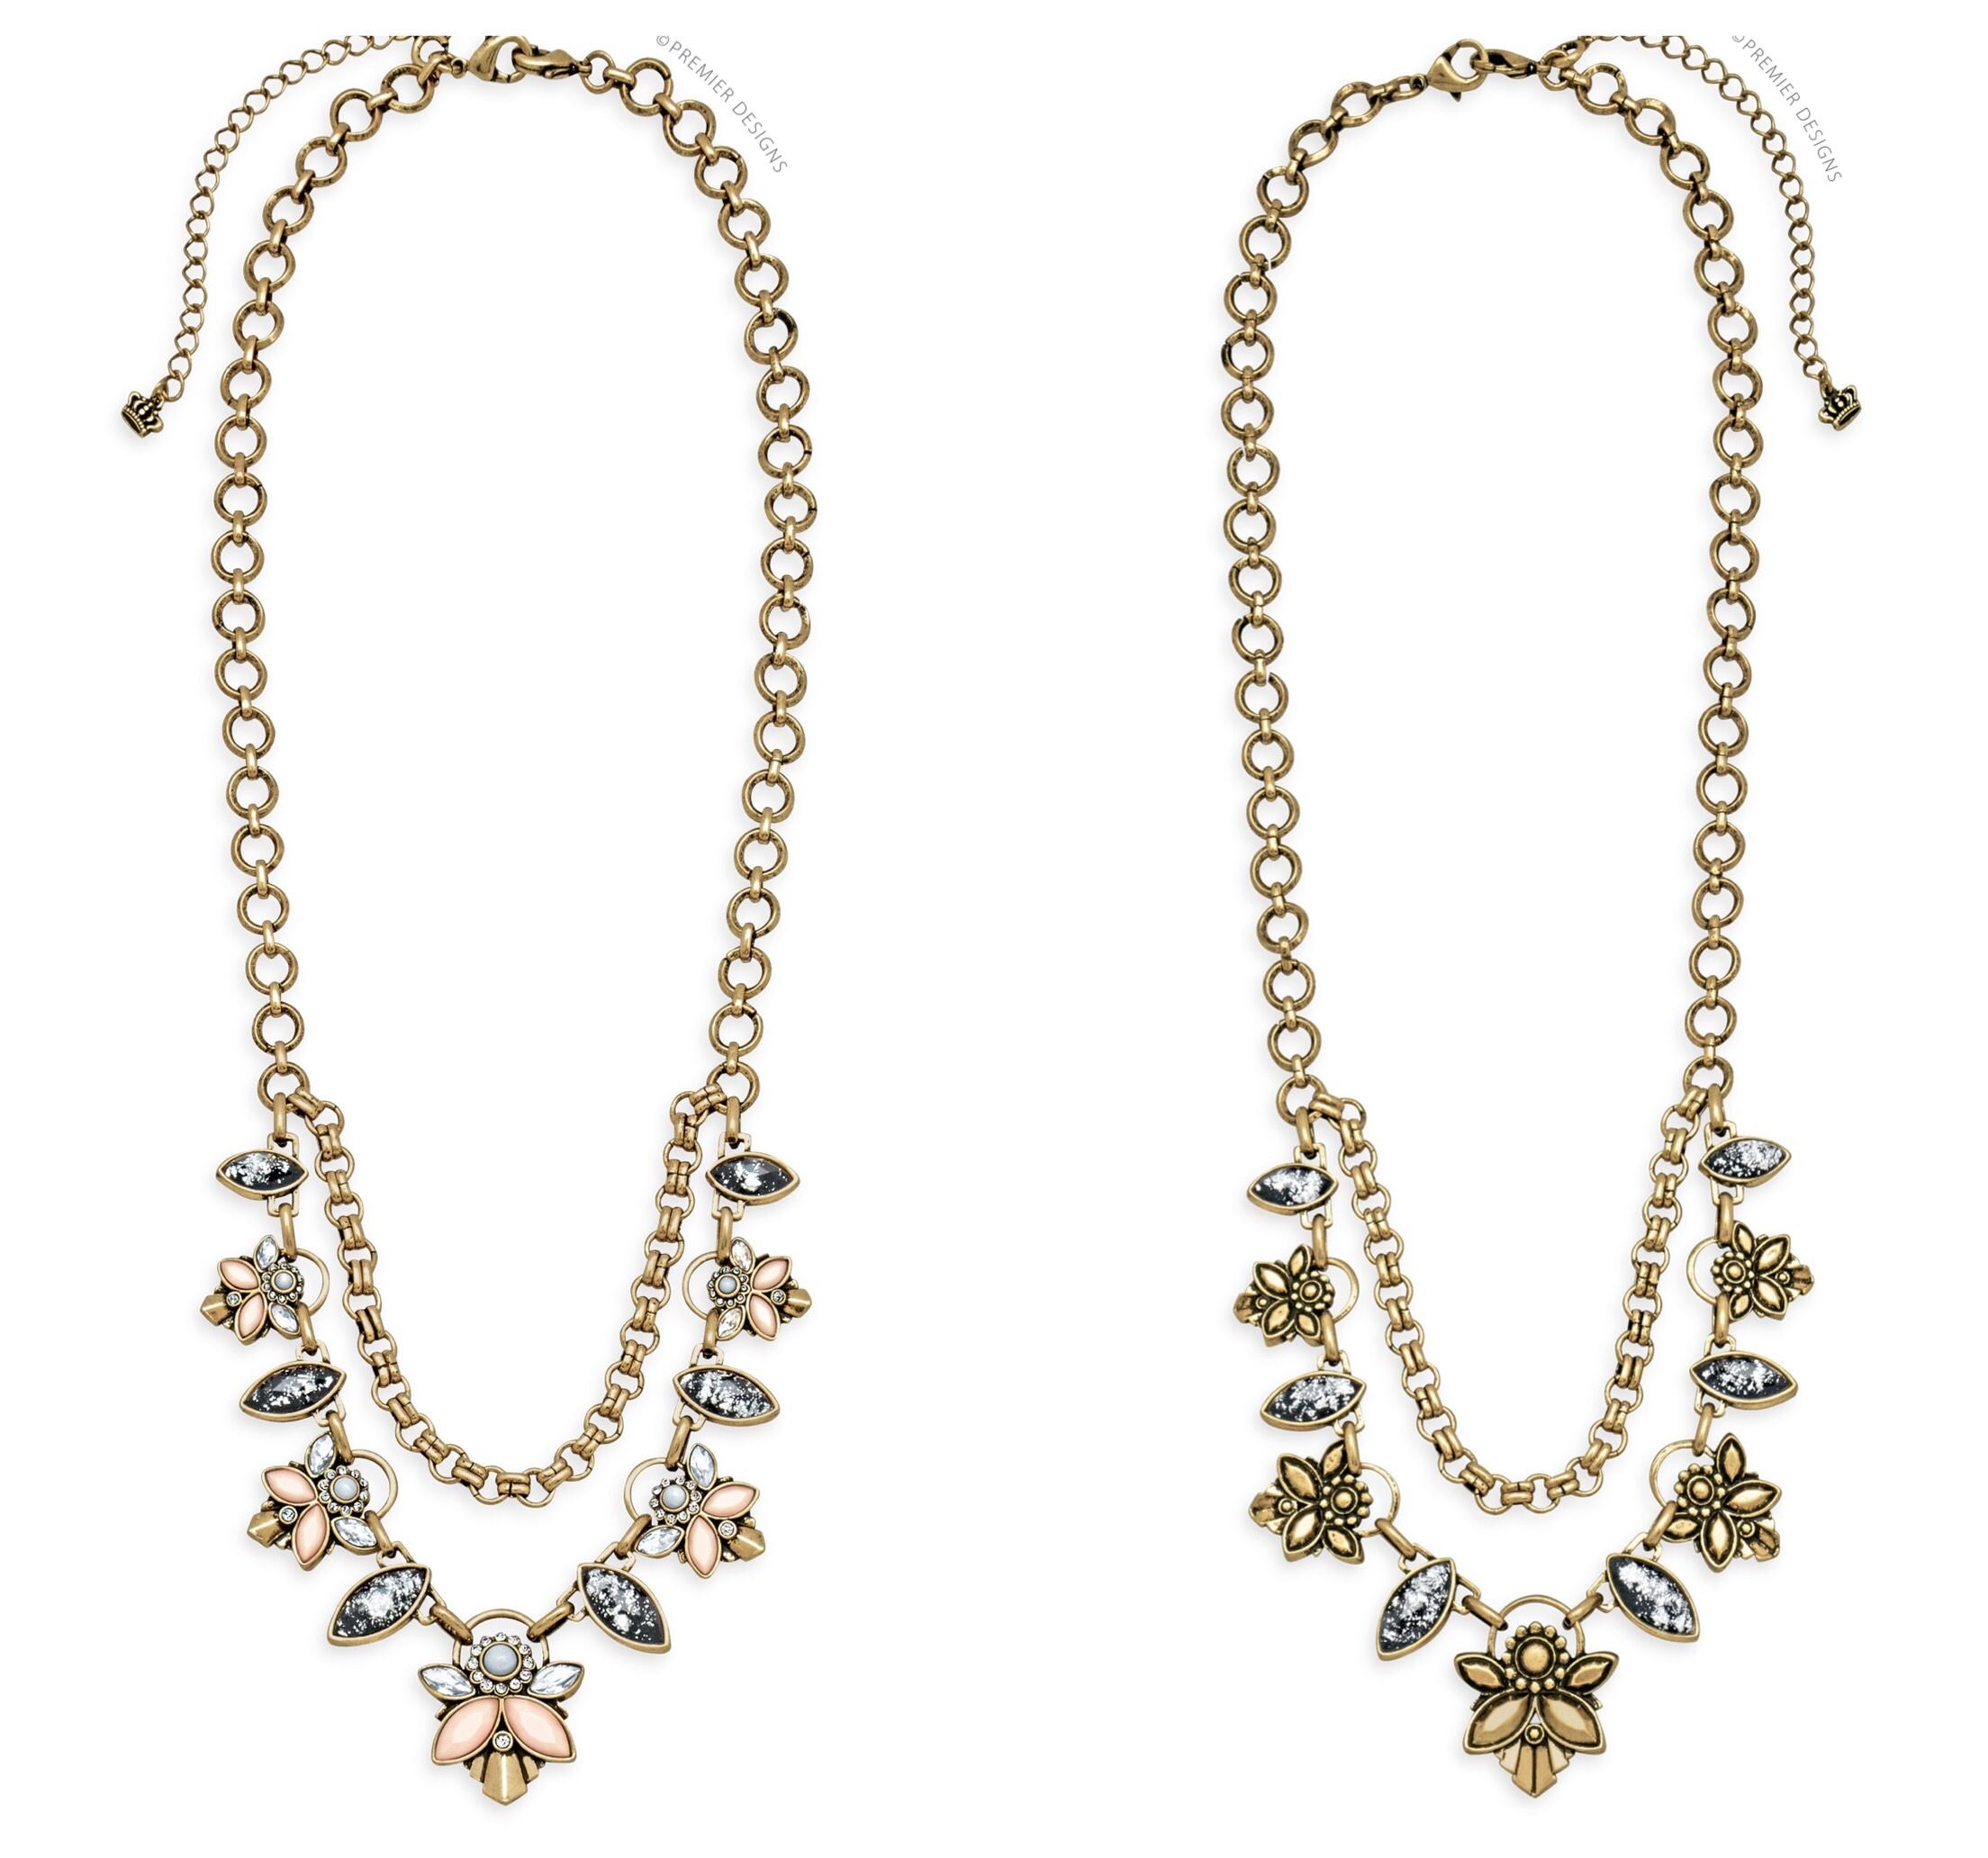 Minx reversible 48 Premier Designs 20172018 Collection Jewelry